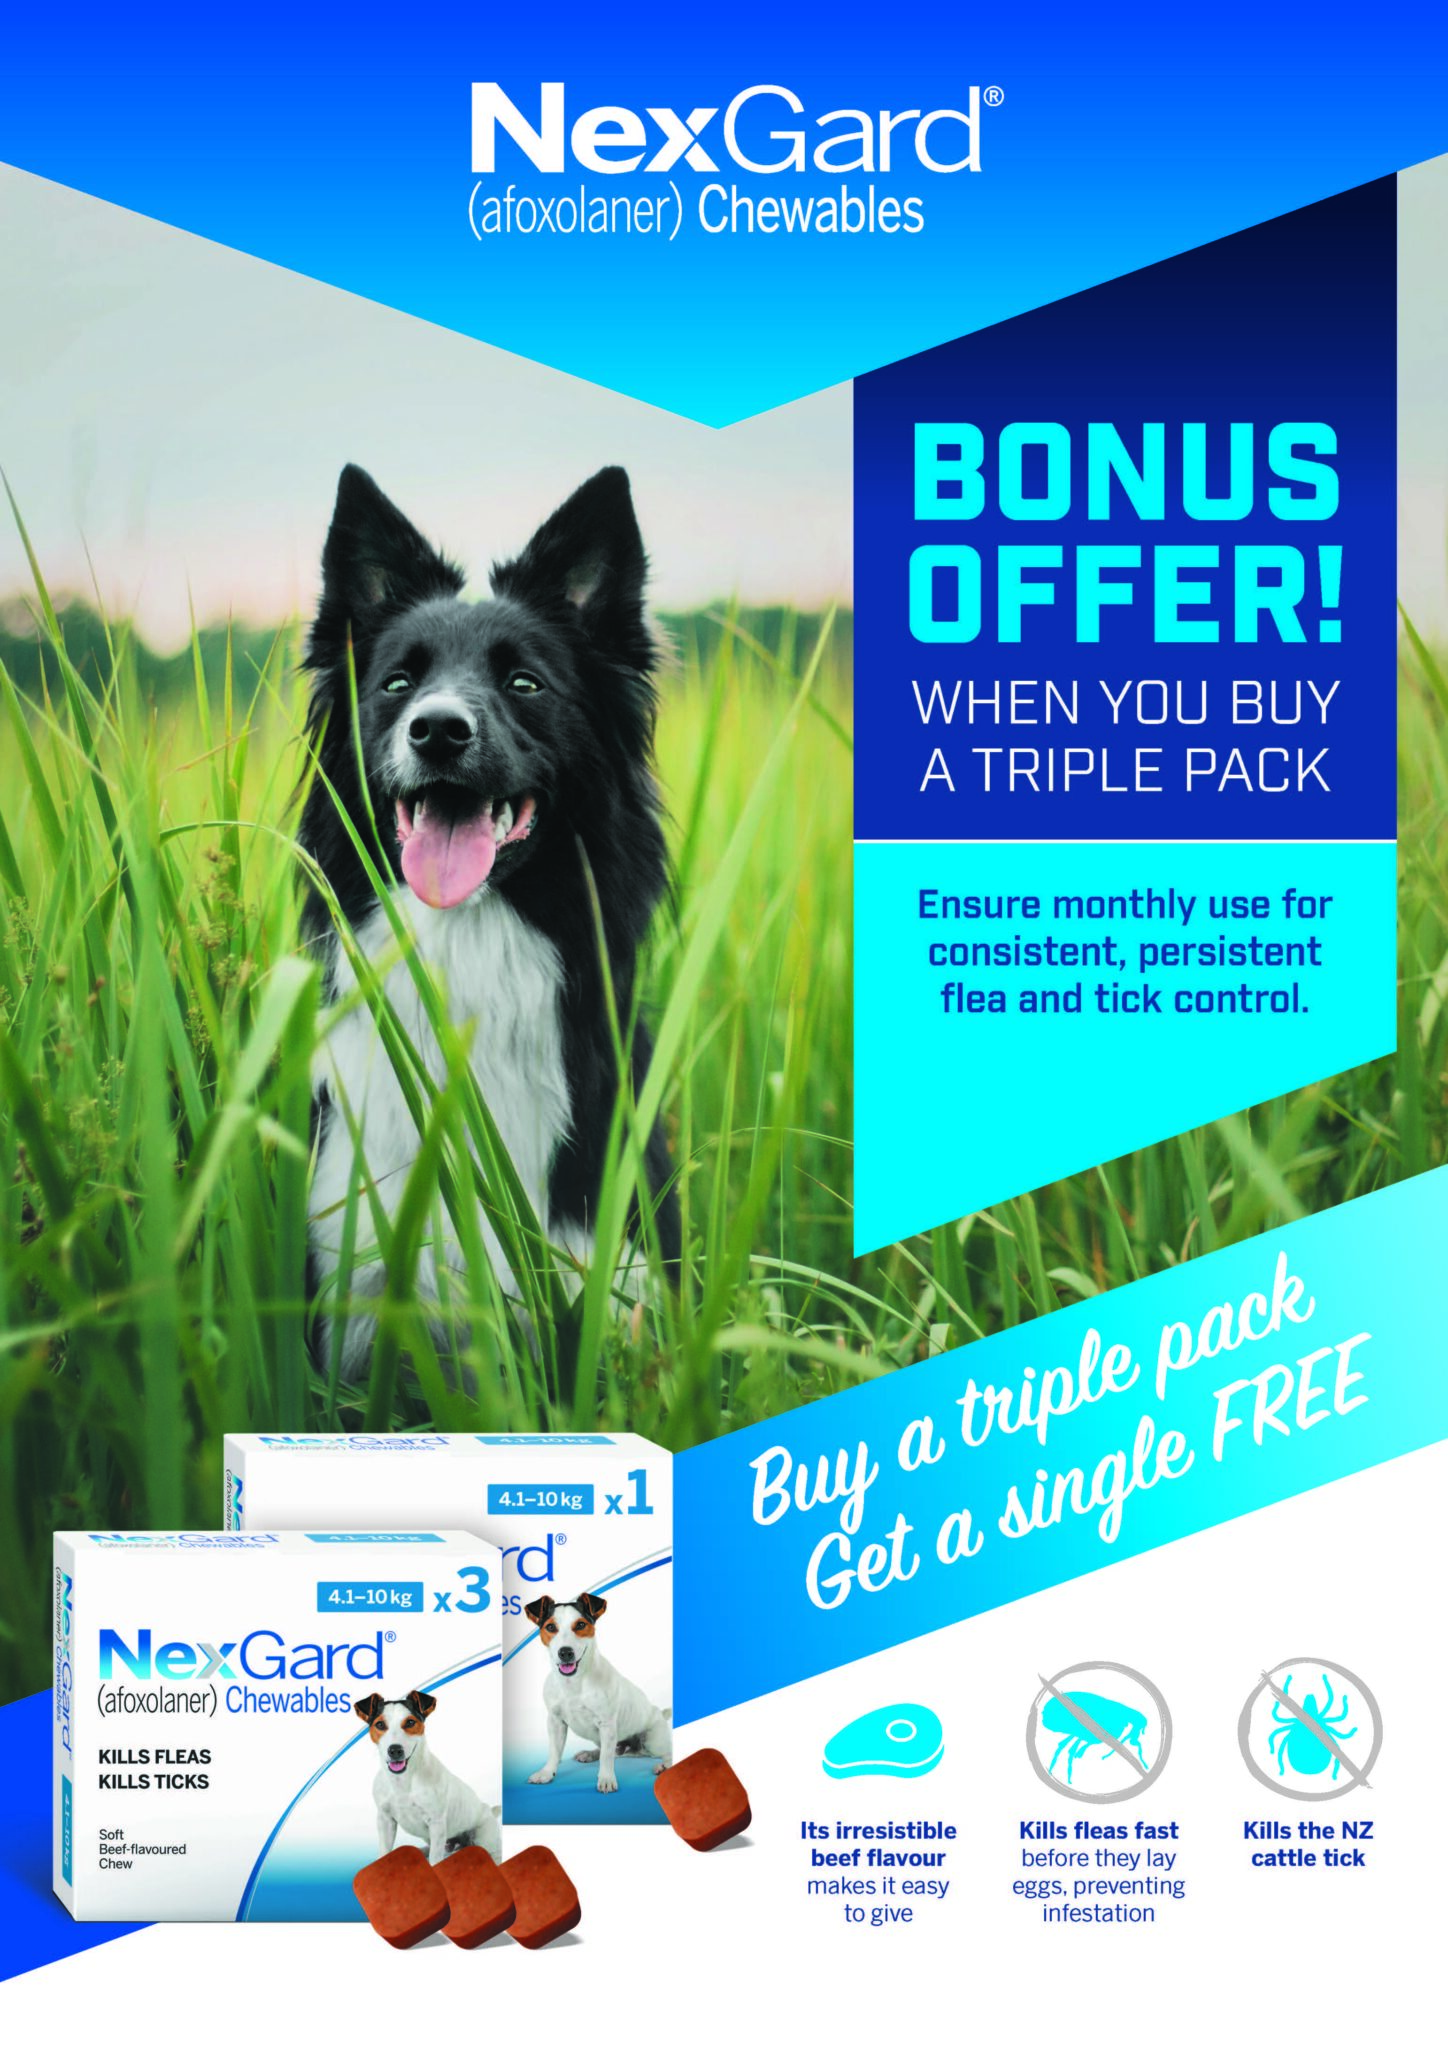 BONUS OFFER – Purchase Nexgard 3 Pack And Get A Single FREE!